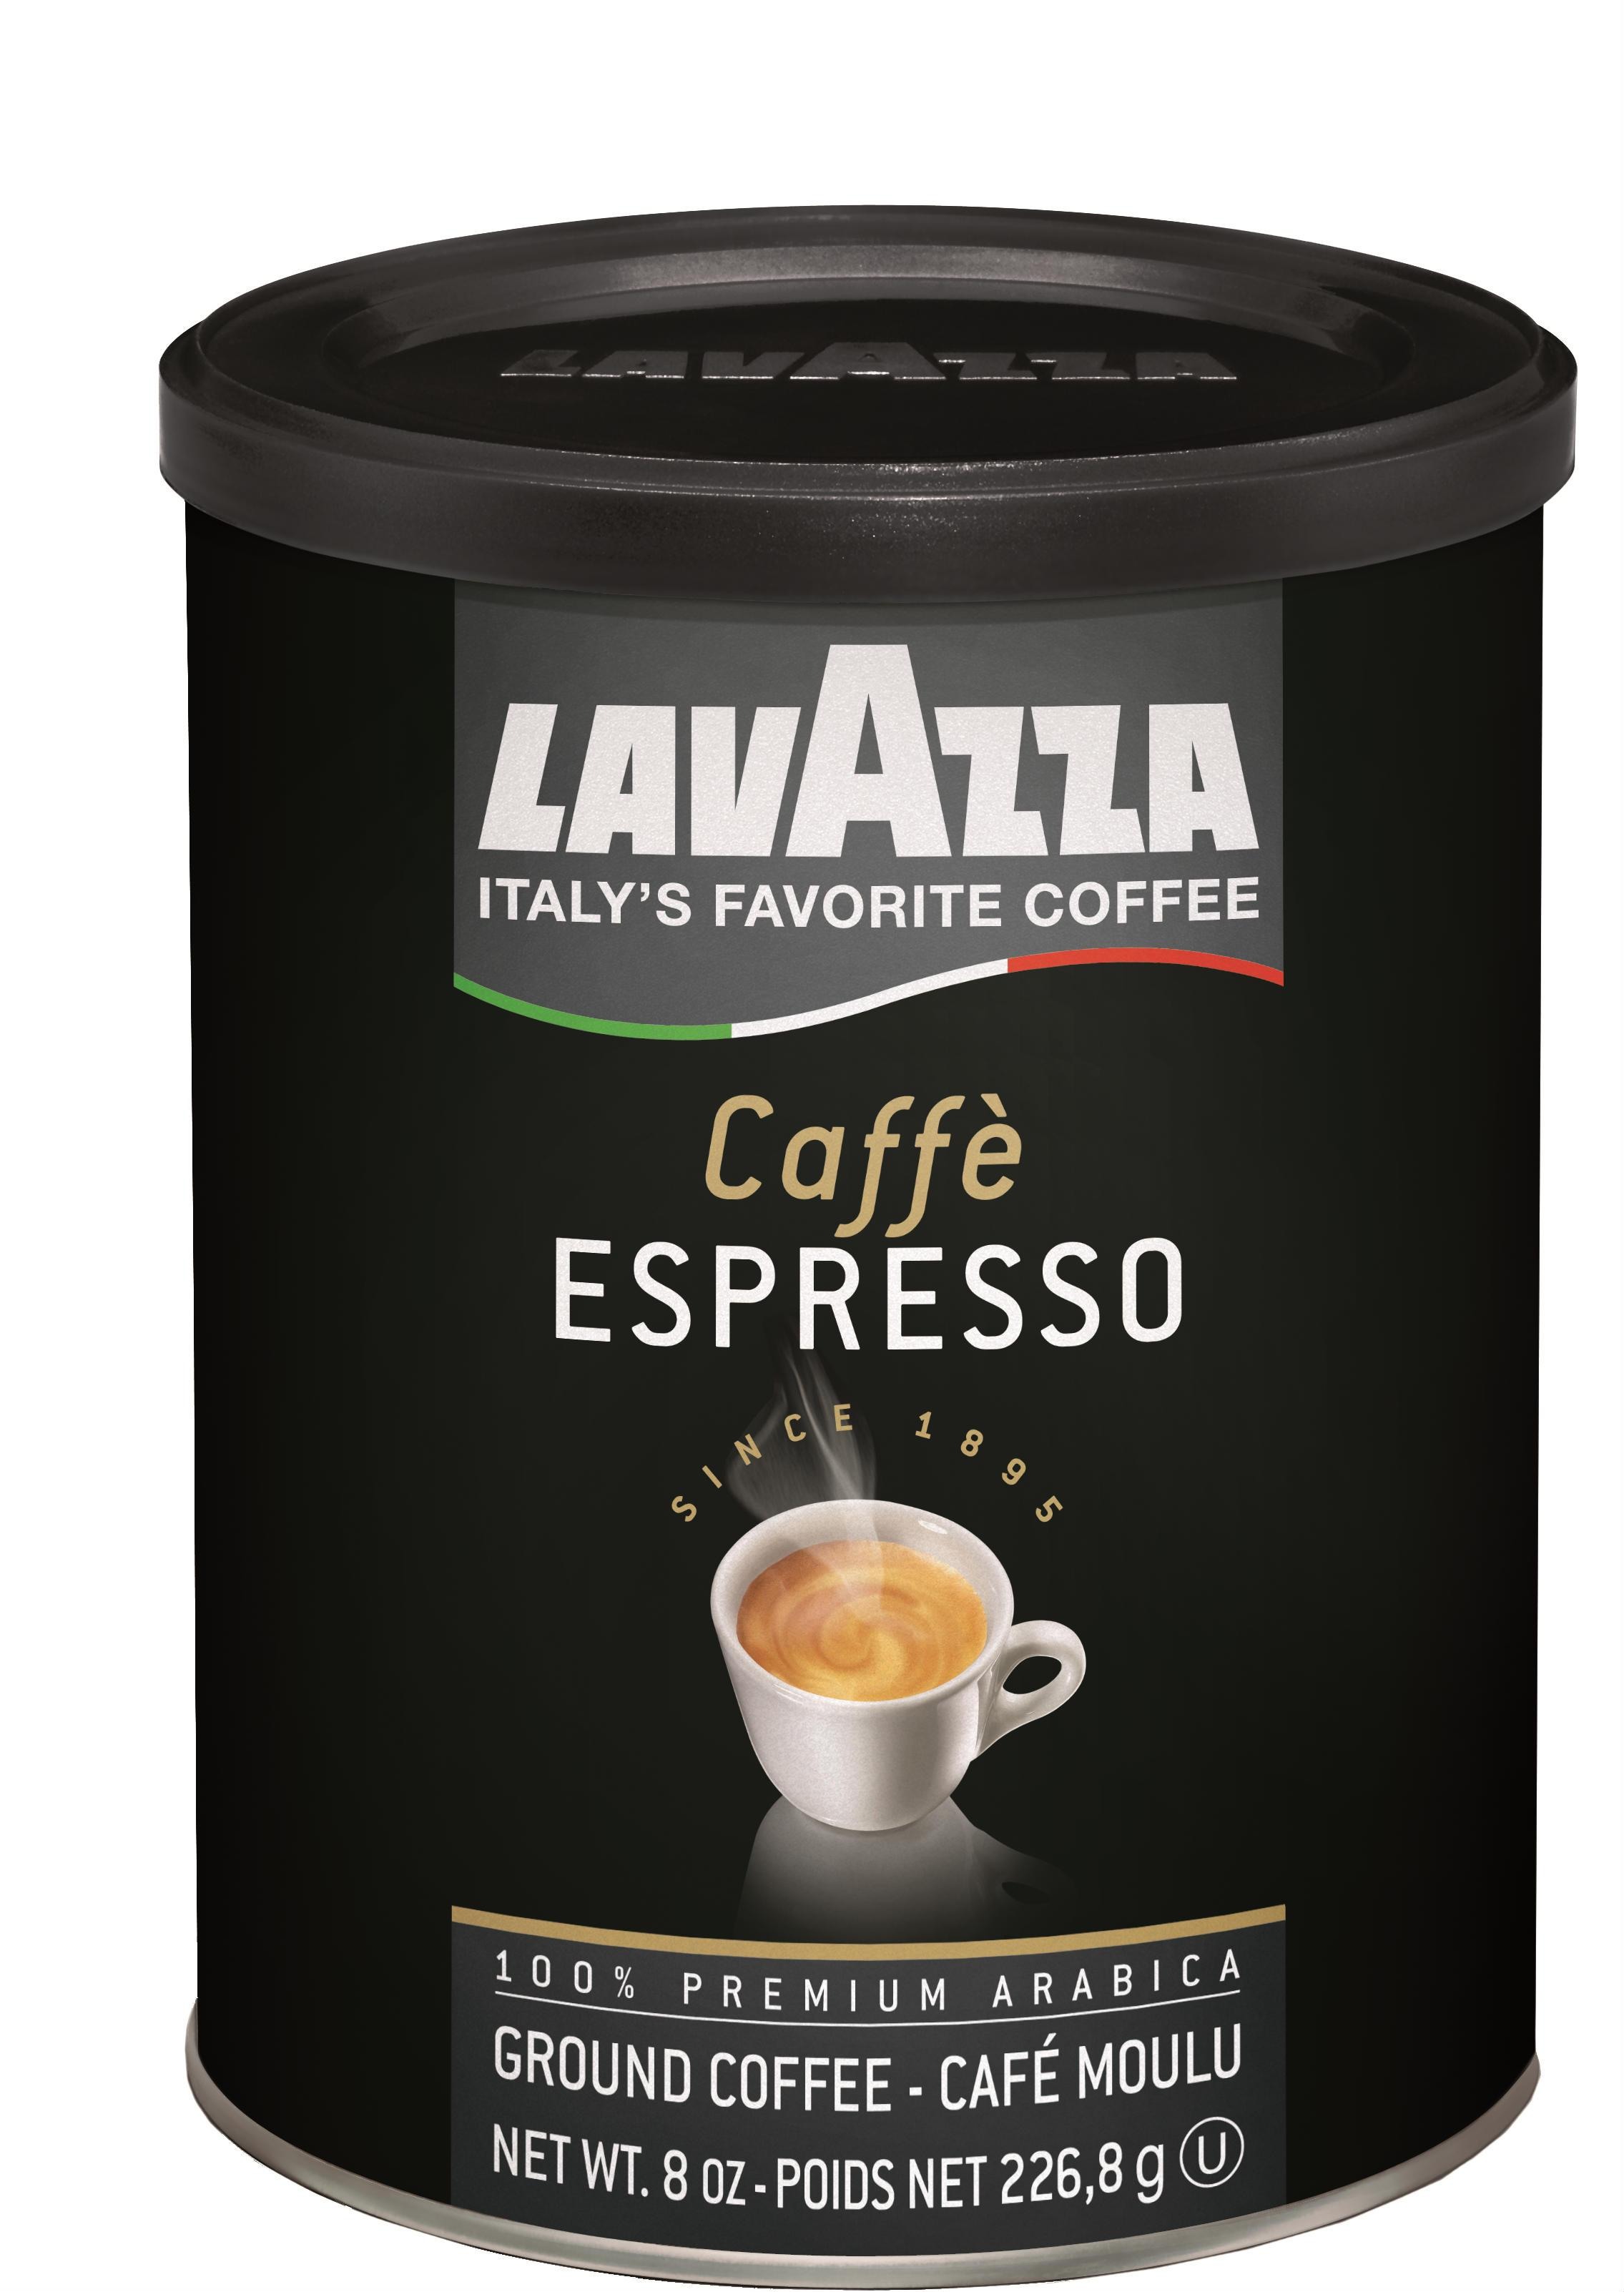 How To Use Lavazza Coffee Maker : Amazon.com : Lavazza Caffe Espresso Ground Coffee Blend ...